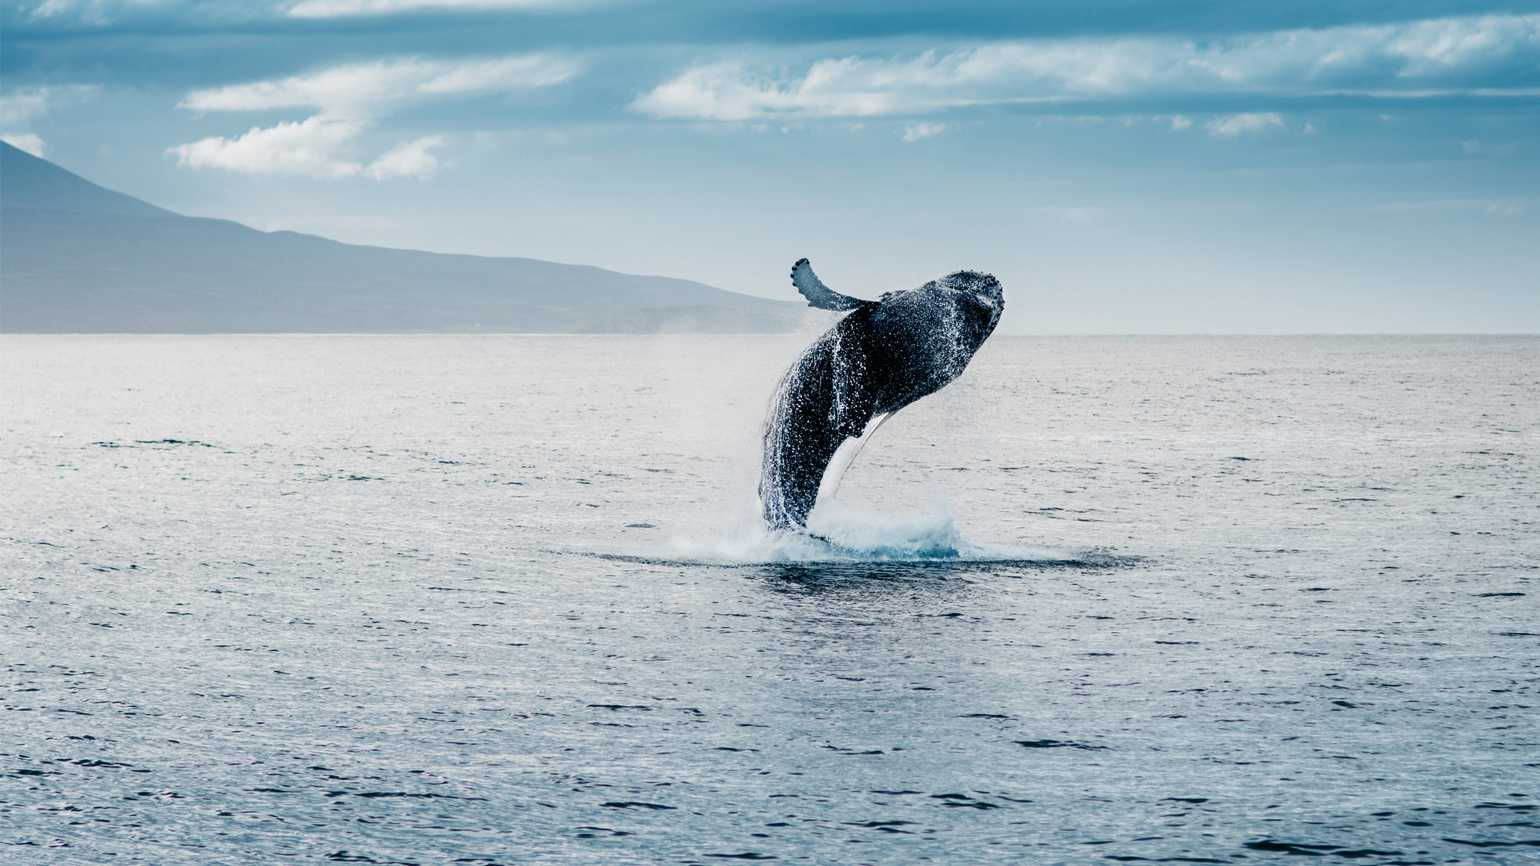 A majestic whale in emerges from the ocean